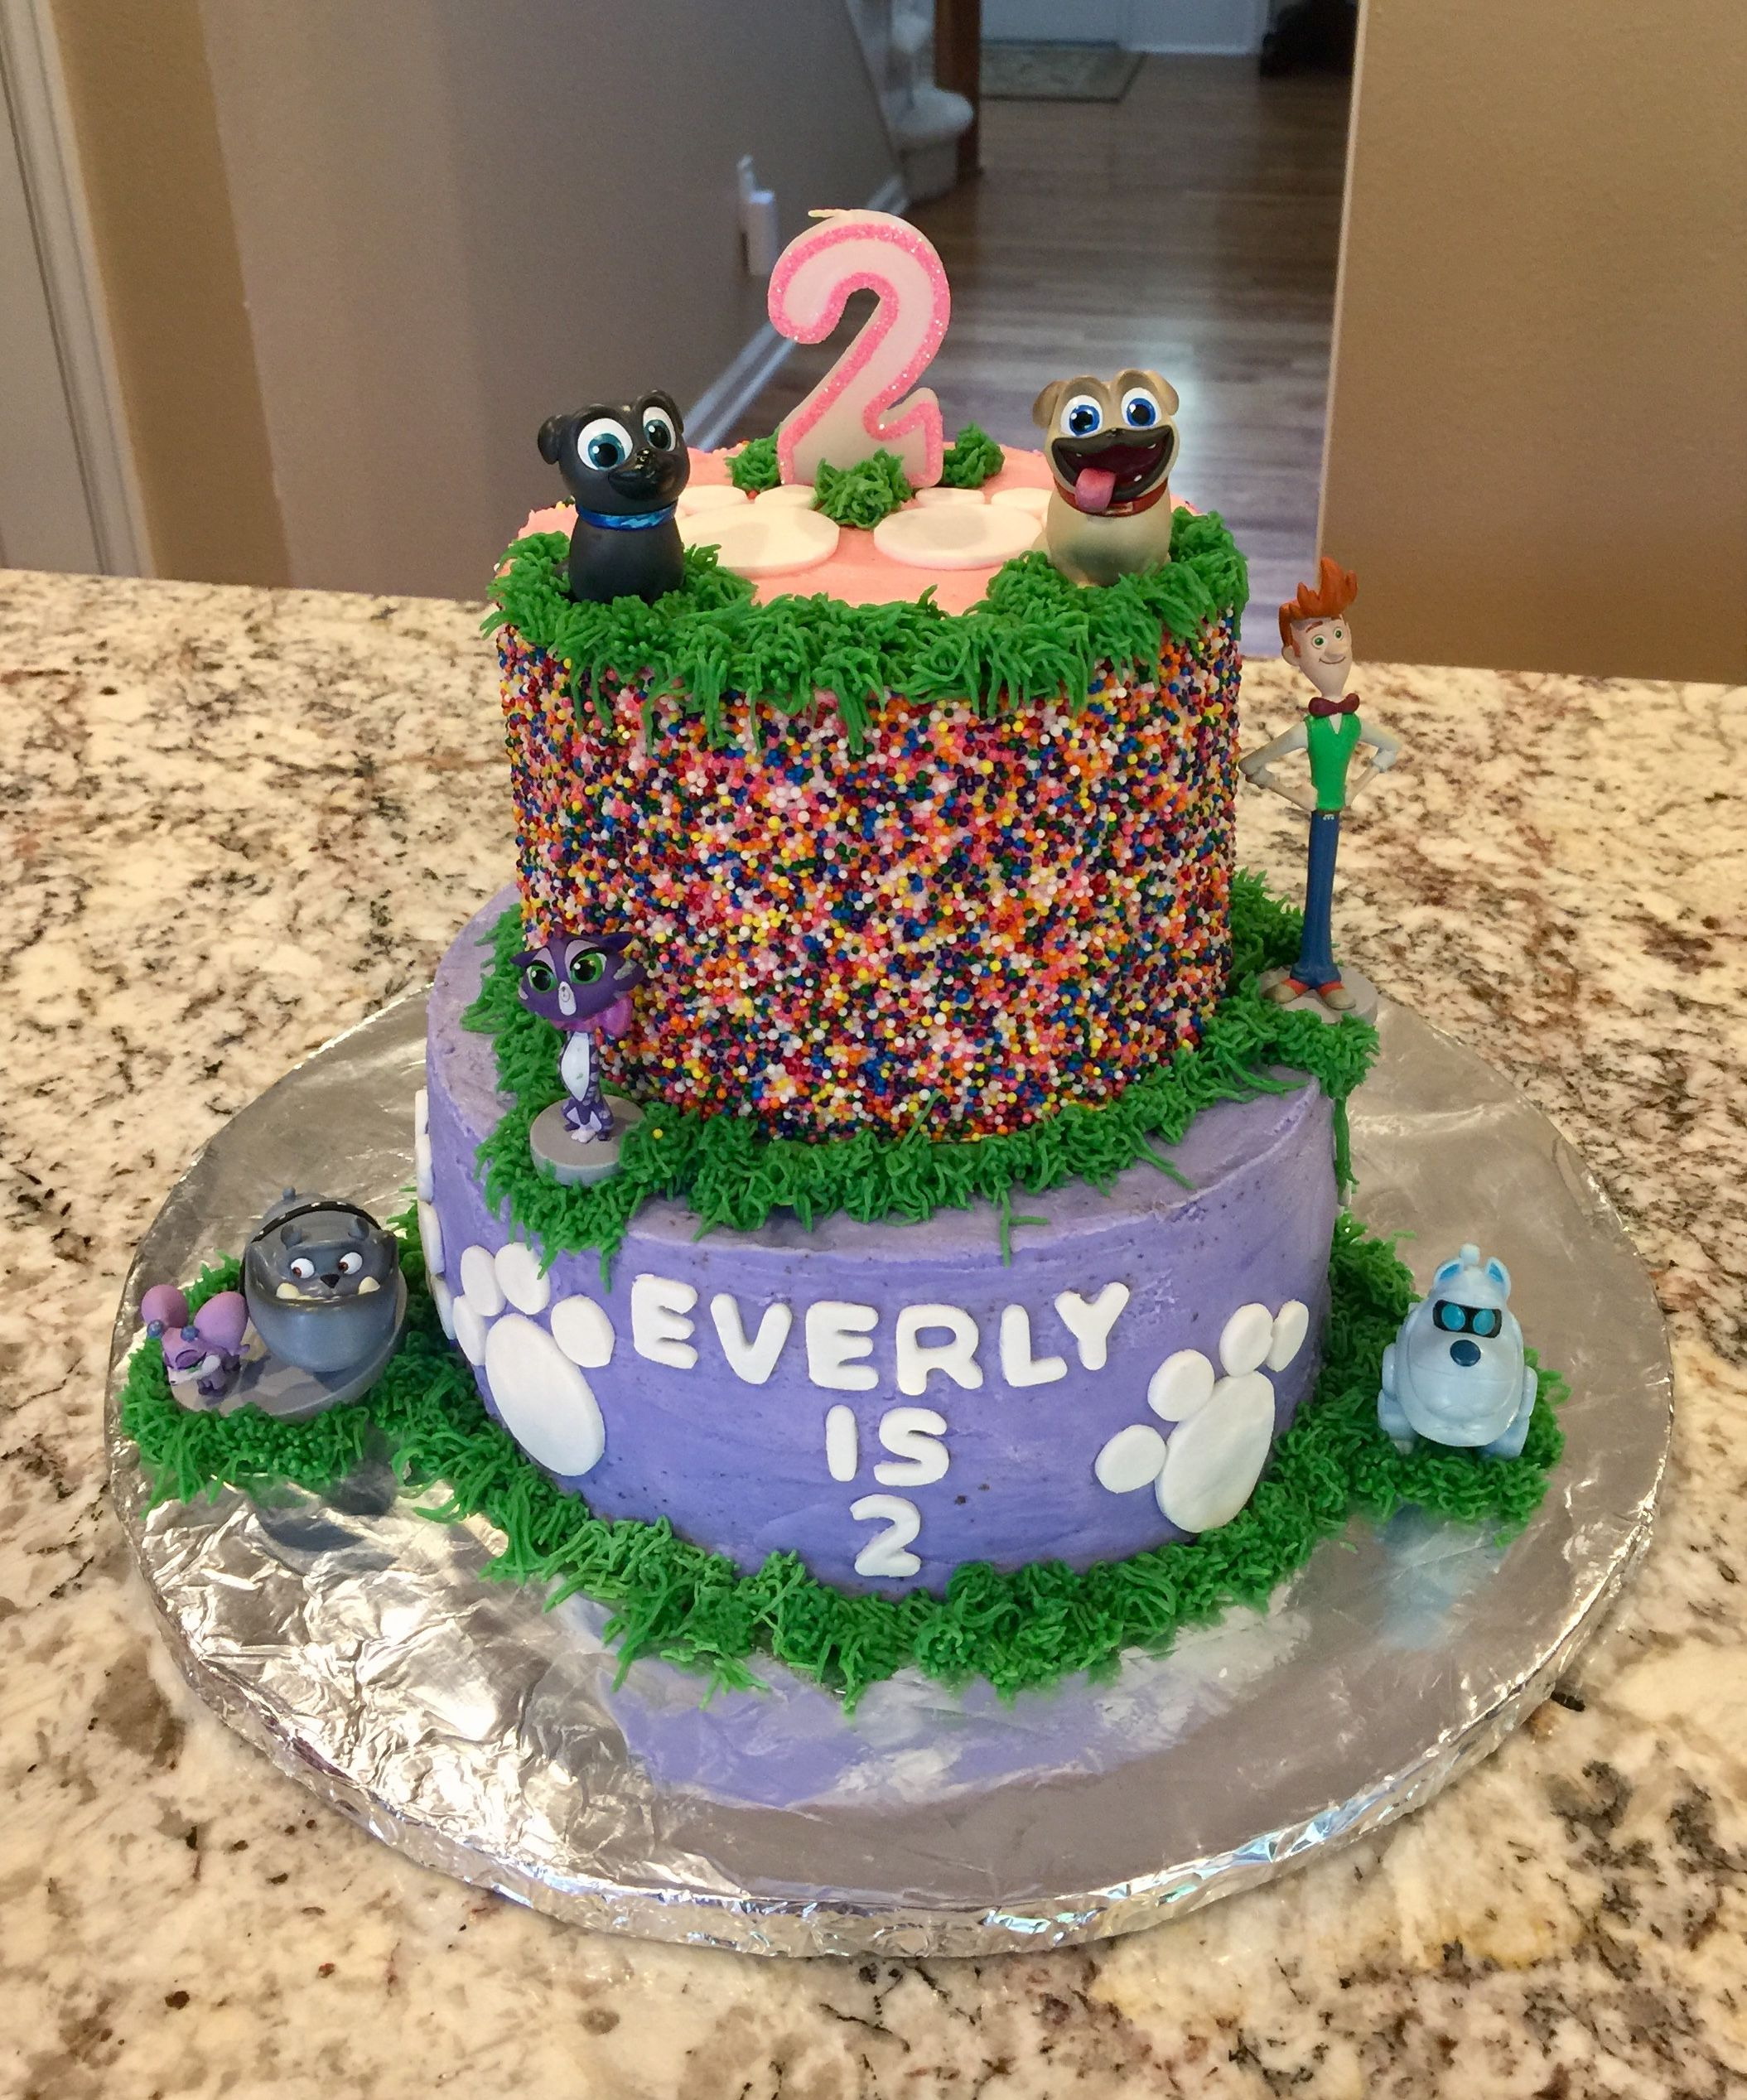 Feminie version of puppy dog pals cake with images